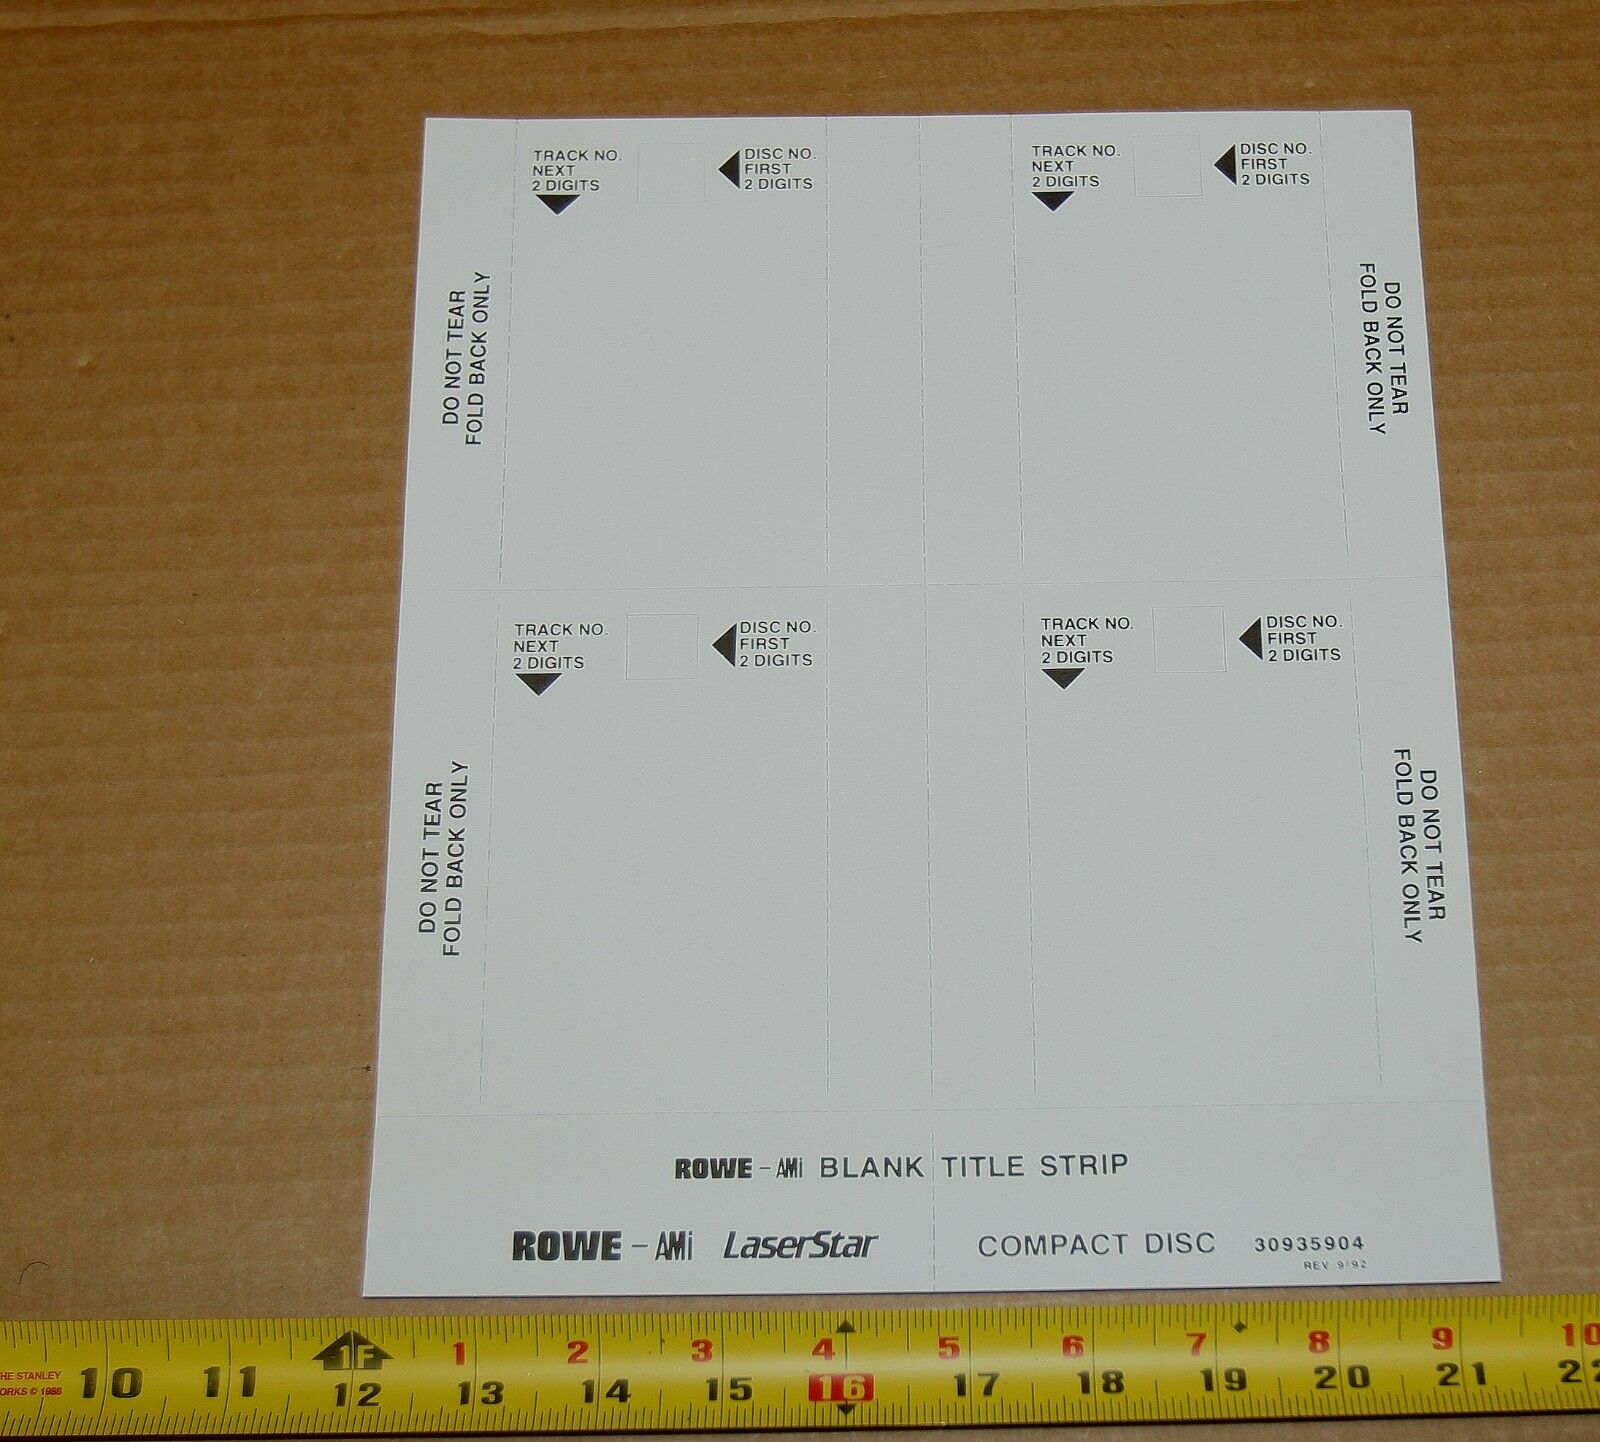 Rowe AMI CD-100 jukebox full sheets of blank title strip cards, 25 x 1 of  10 Rowe AMI CD-100 jukebox ...